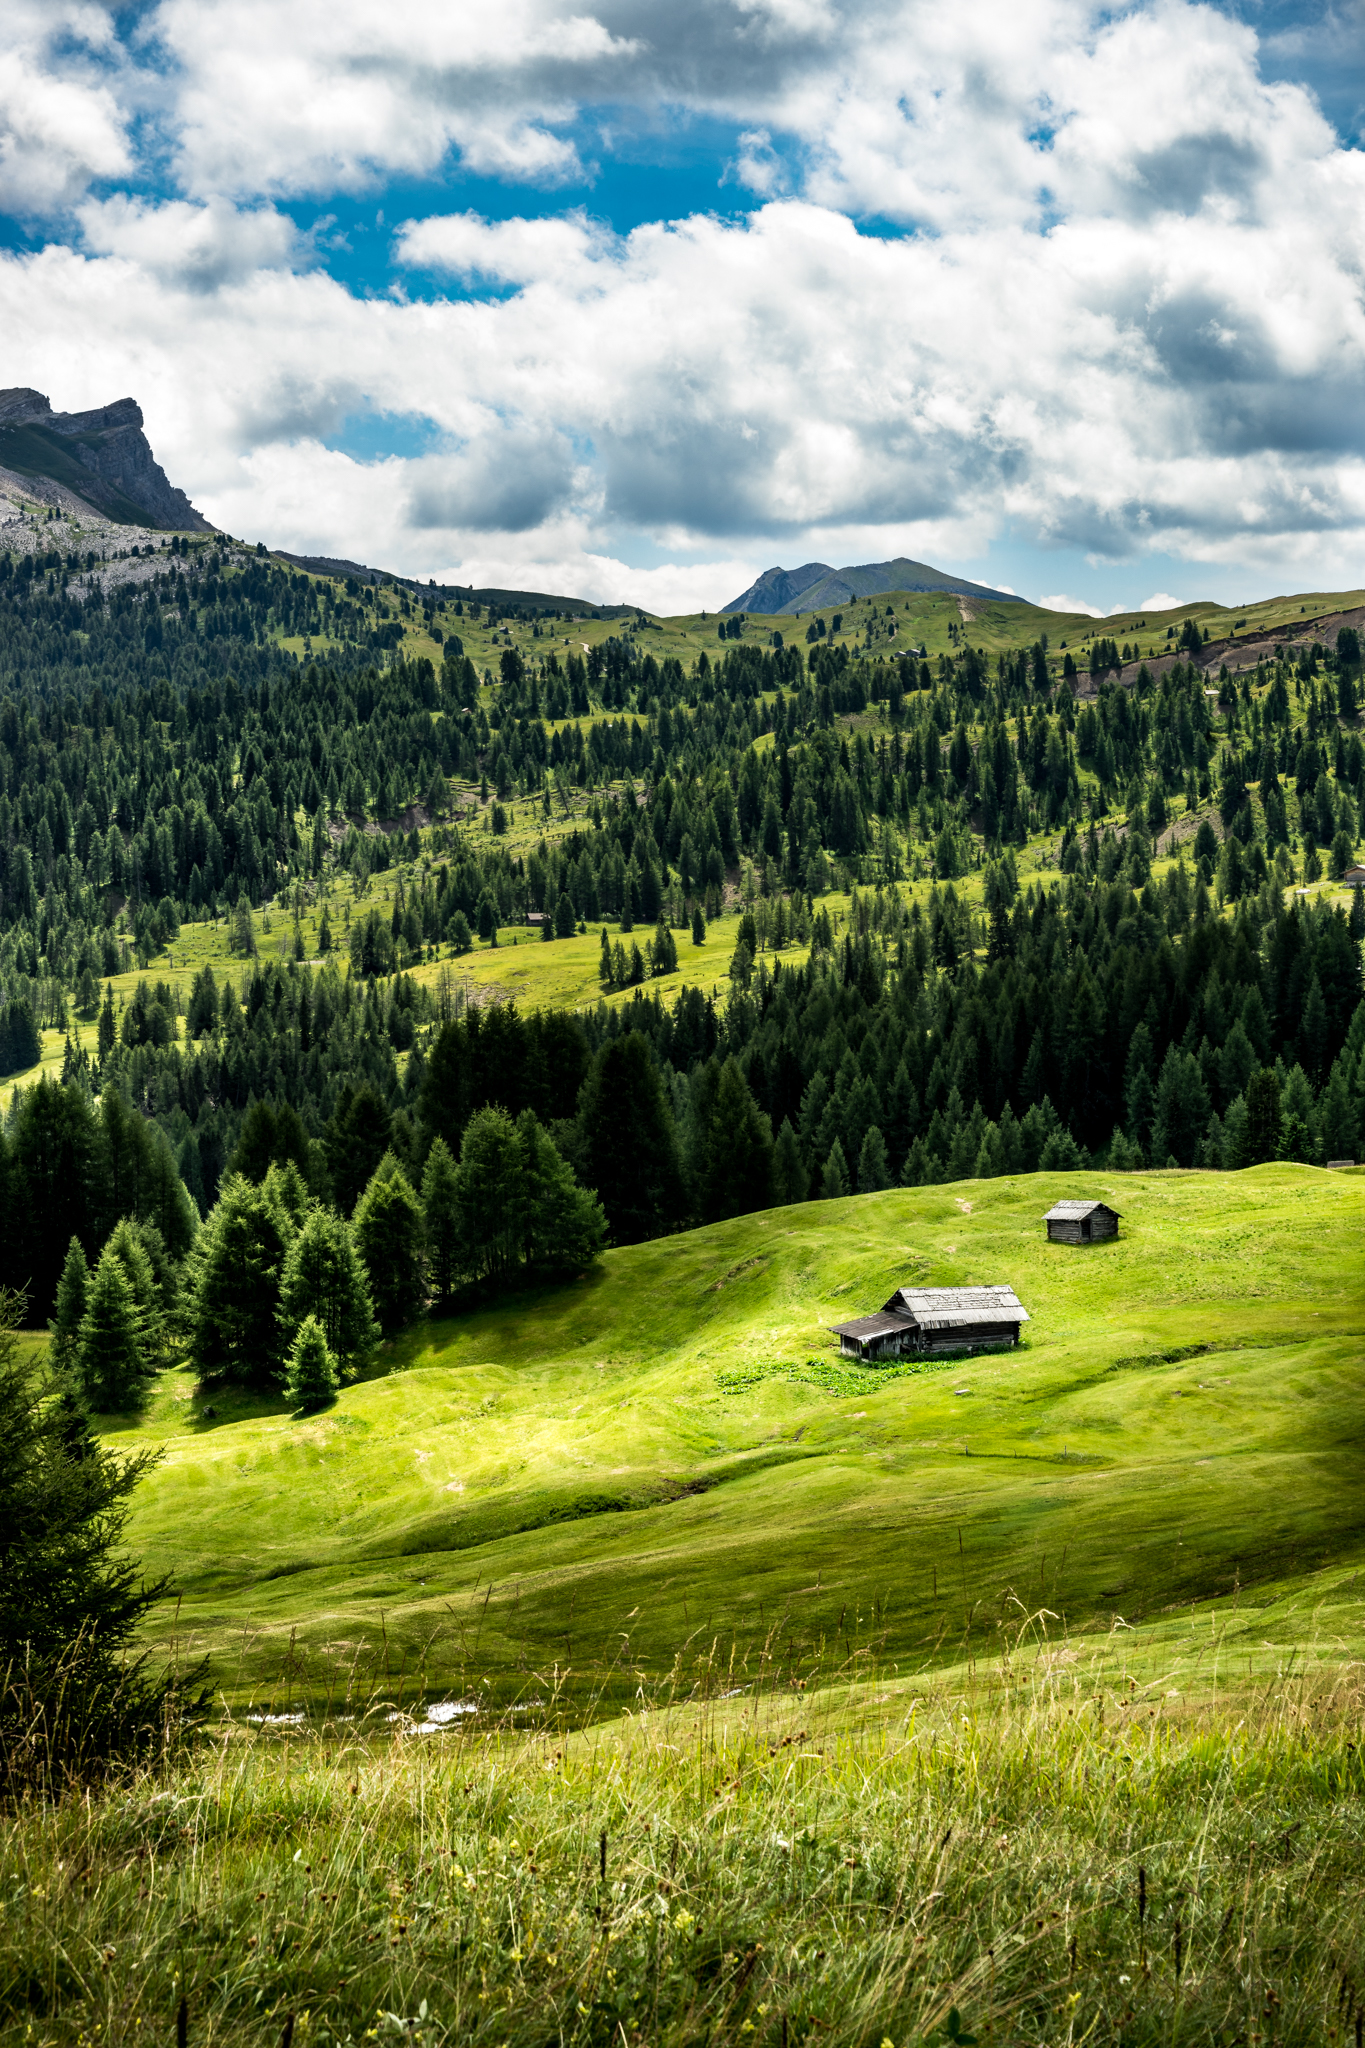 The house – Alta Badia, Italy – Travel, landscape photography